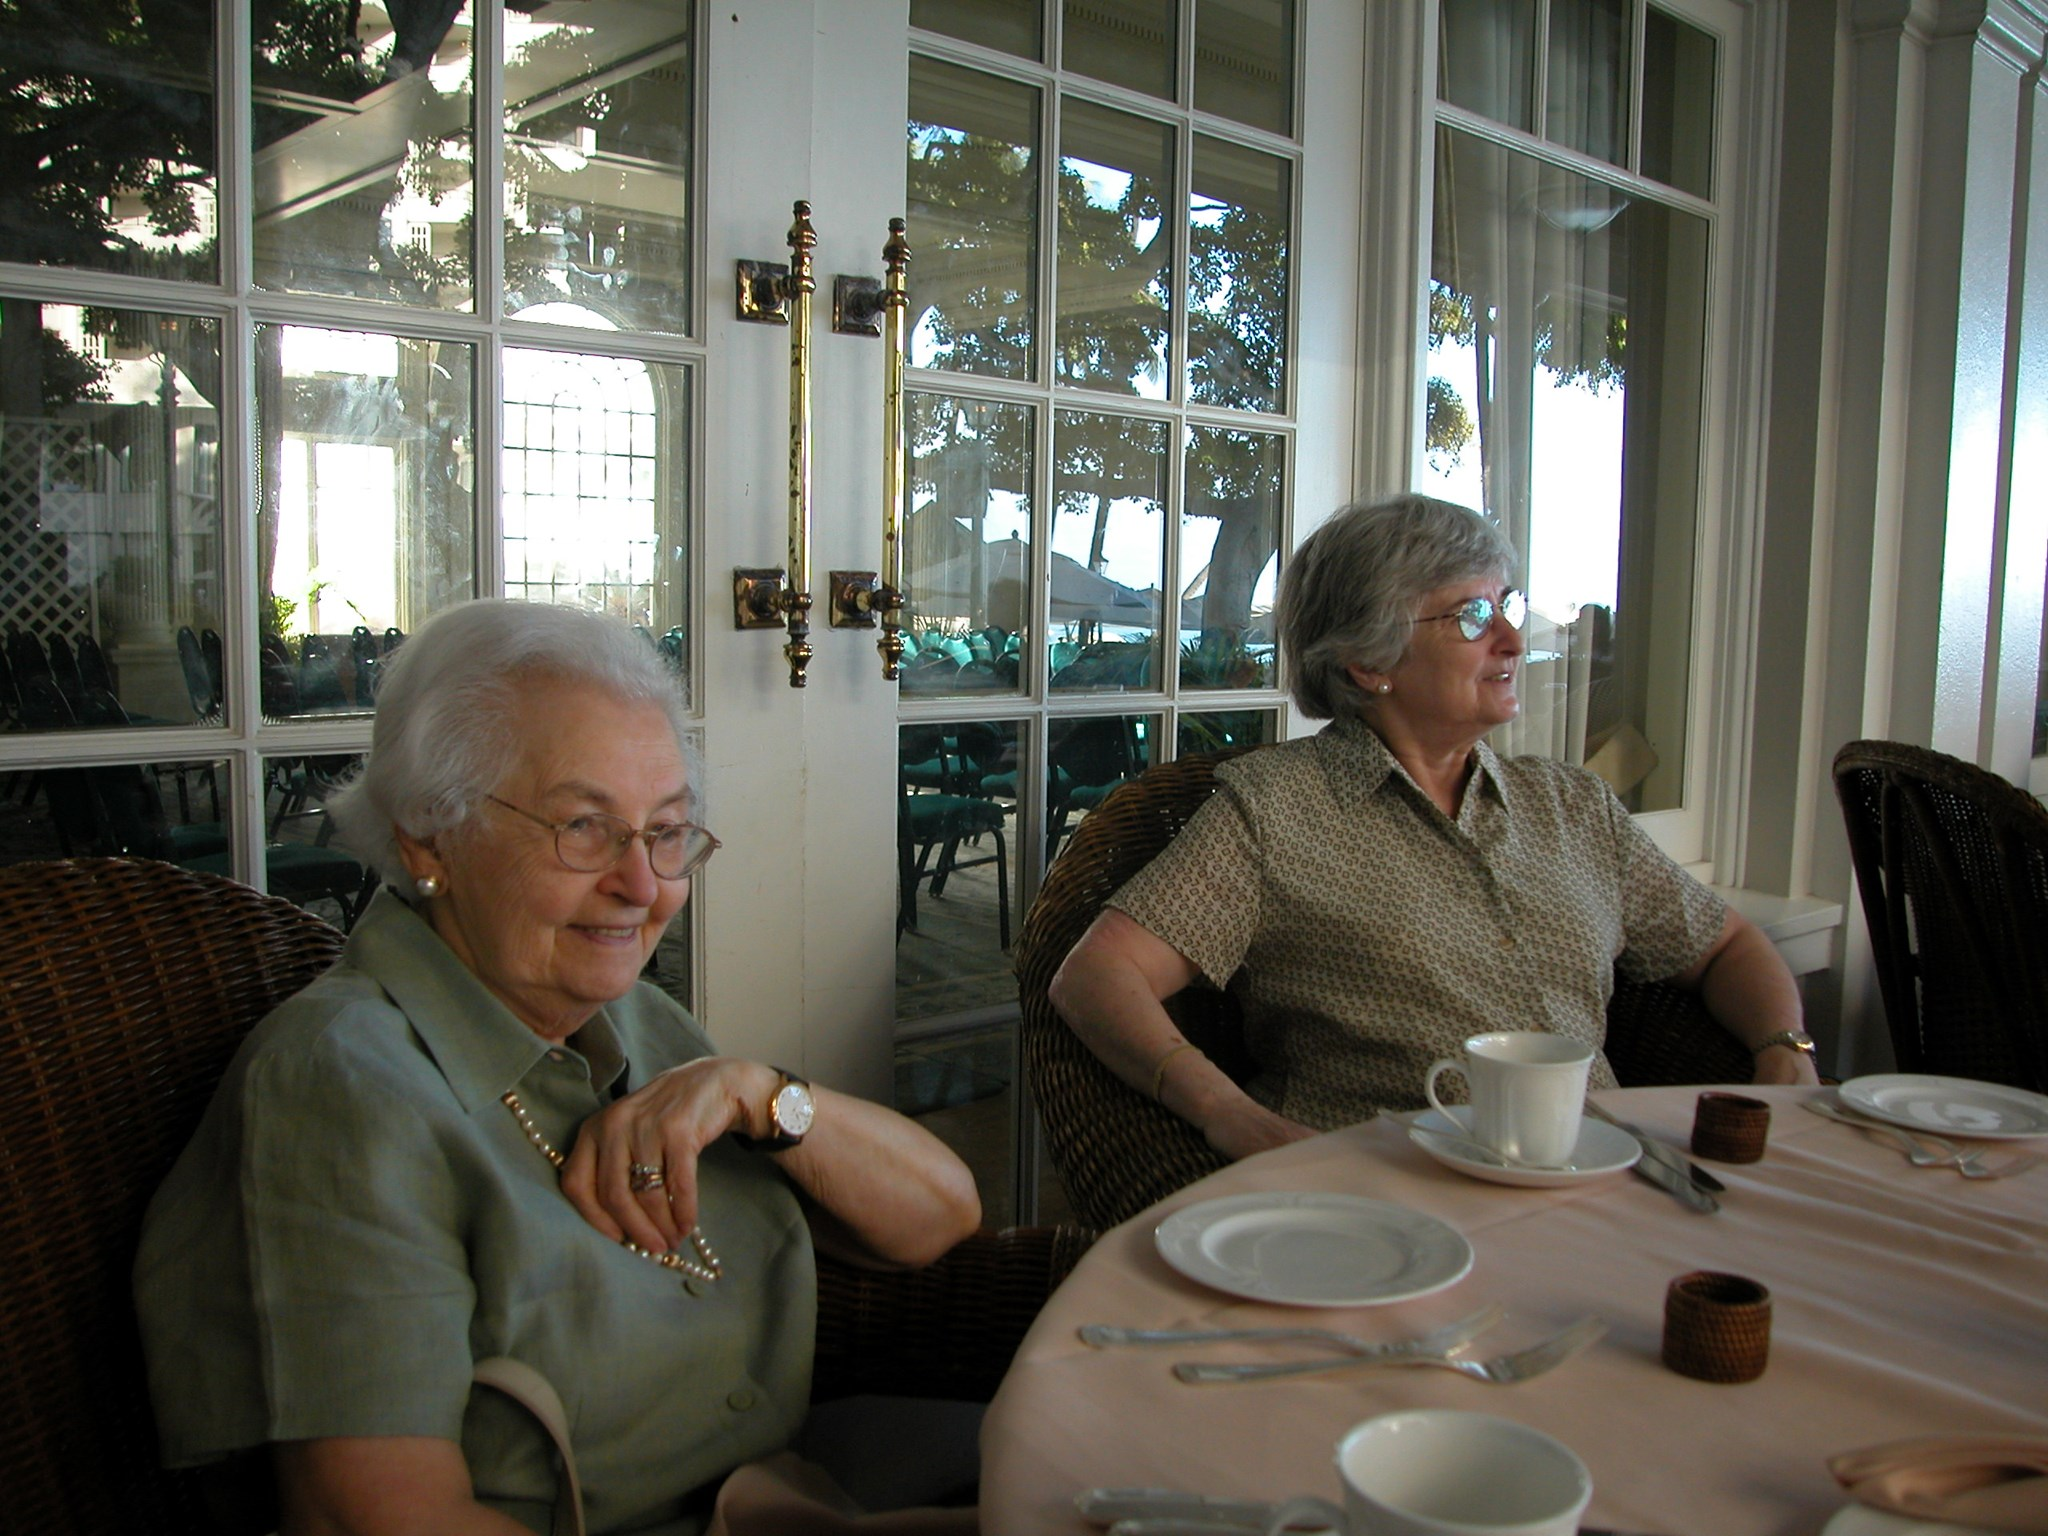 2003 January: Breakfast on the Lanai at the Moana Surfrider in Honolulu, Hawaii